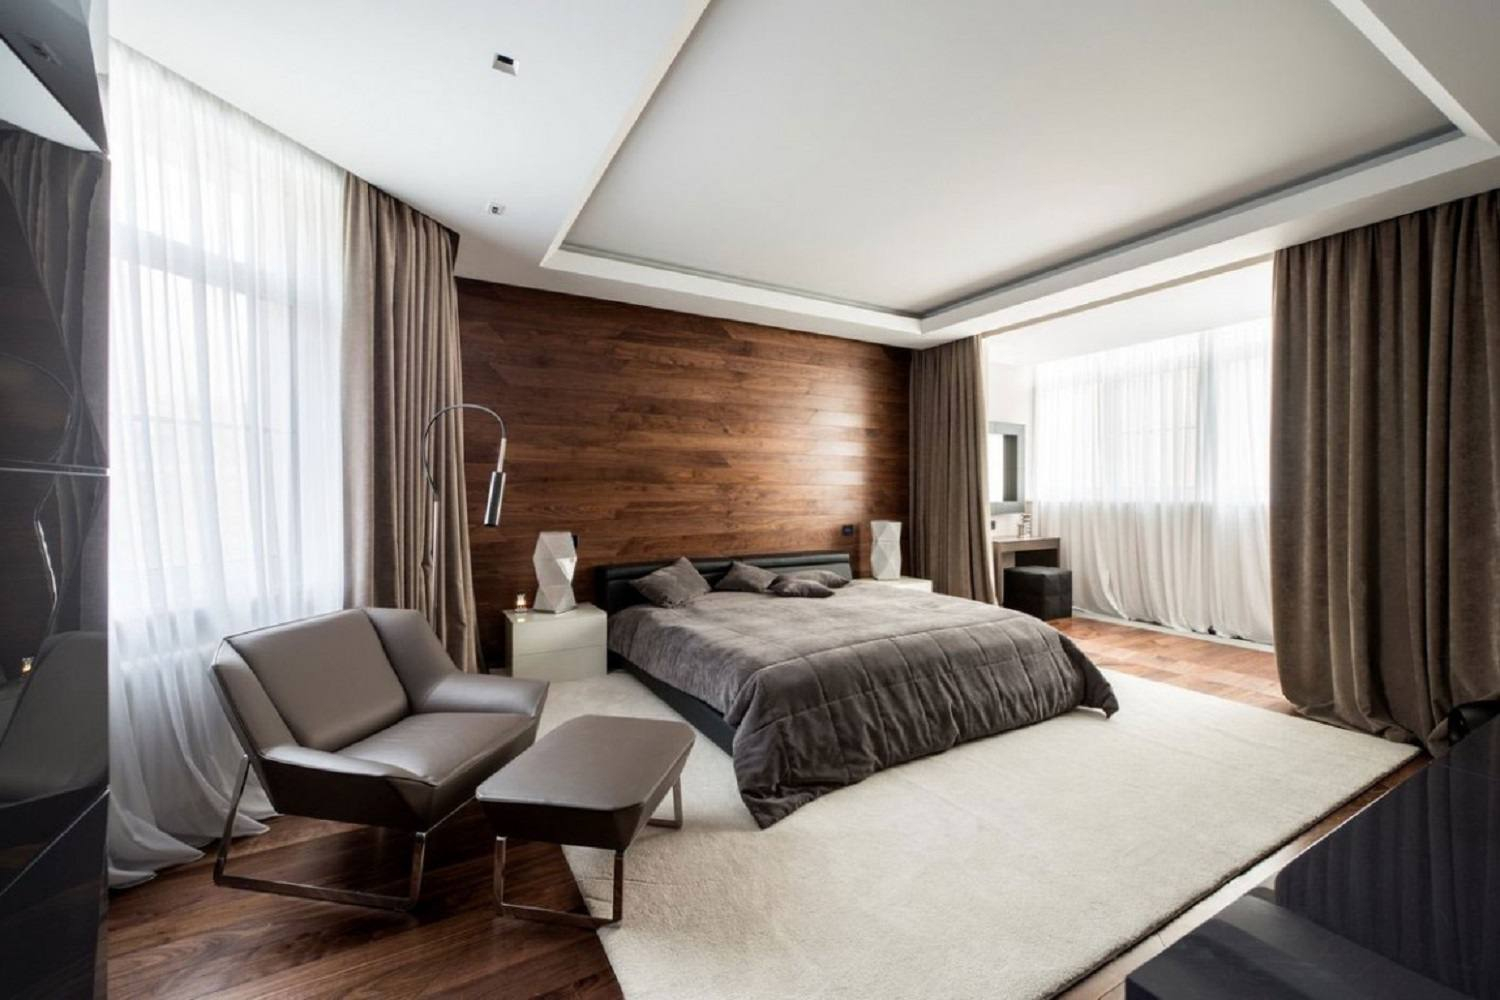 25 Tips And Photos For Decorating A Modern Master Bedroom in Modern Bedroom Pics